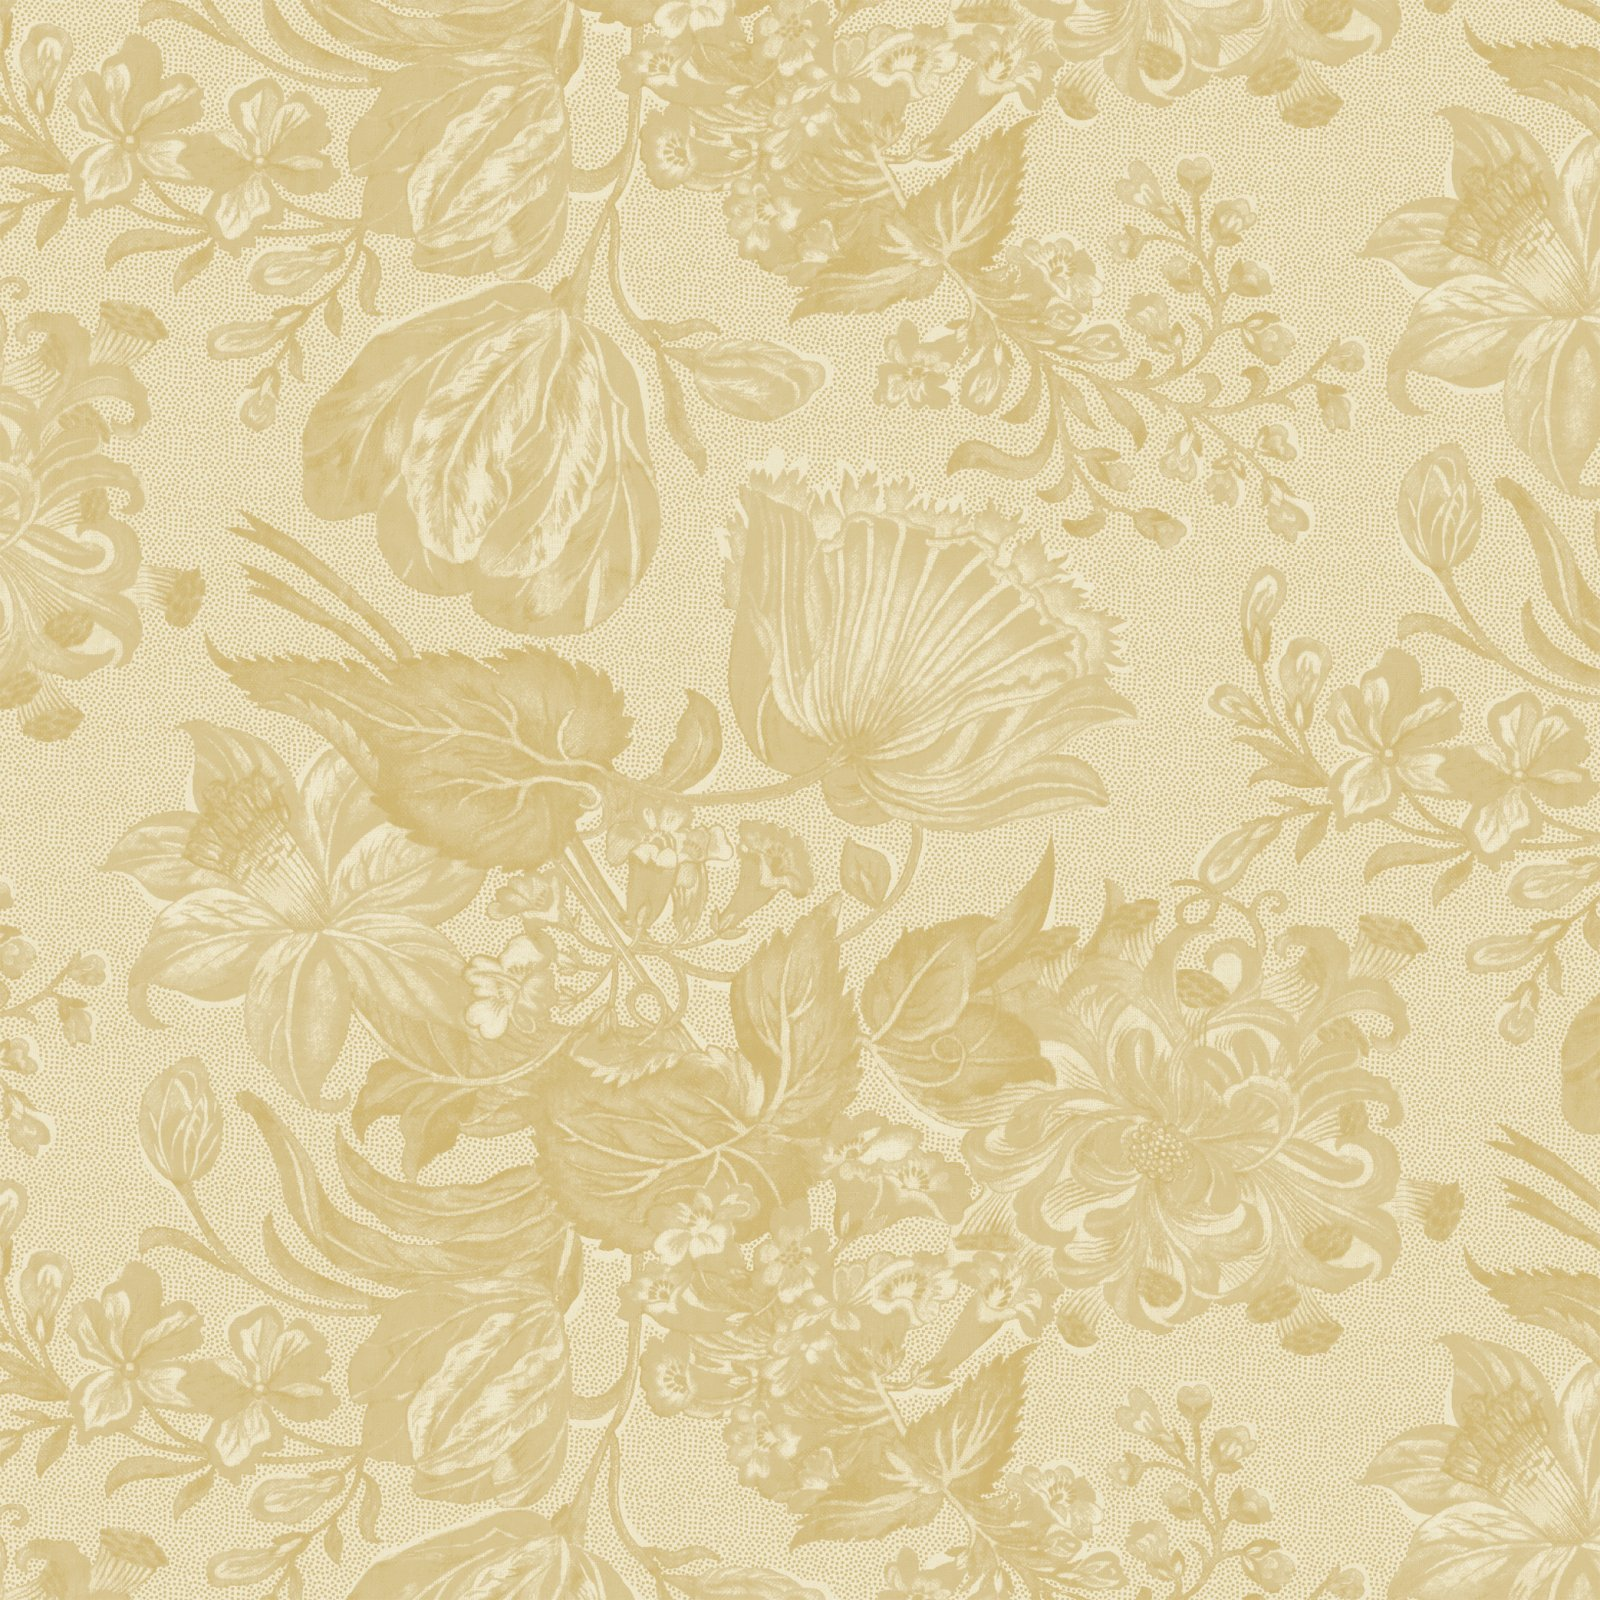 Large Floral Edith 40159-2